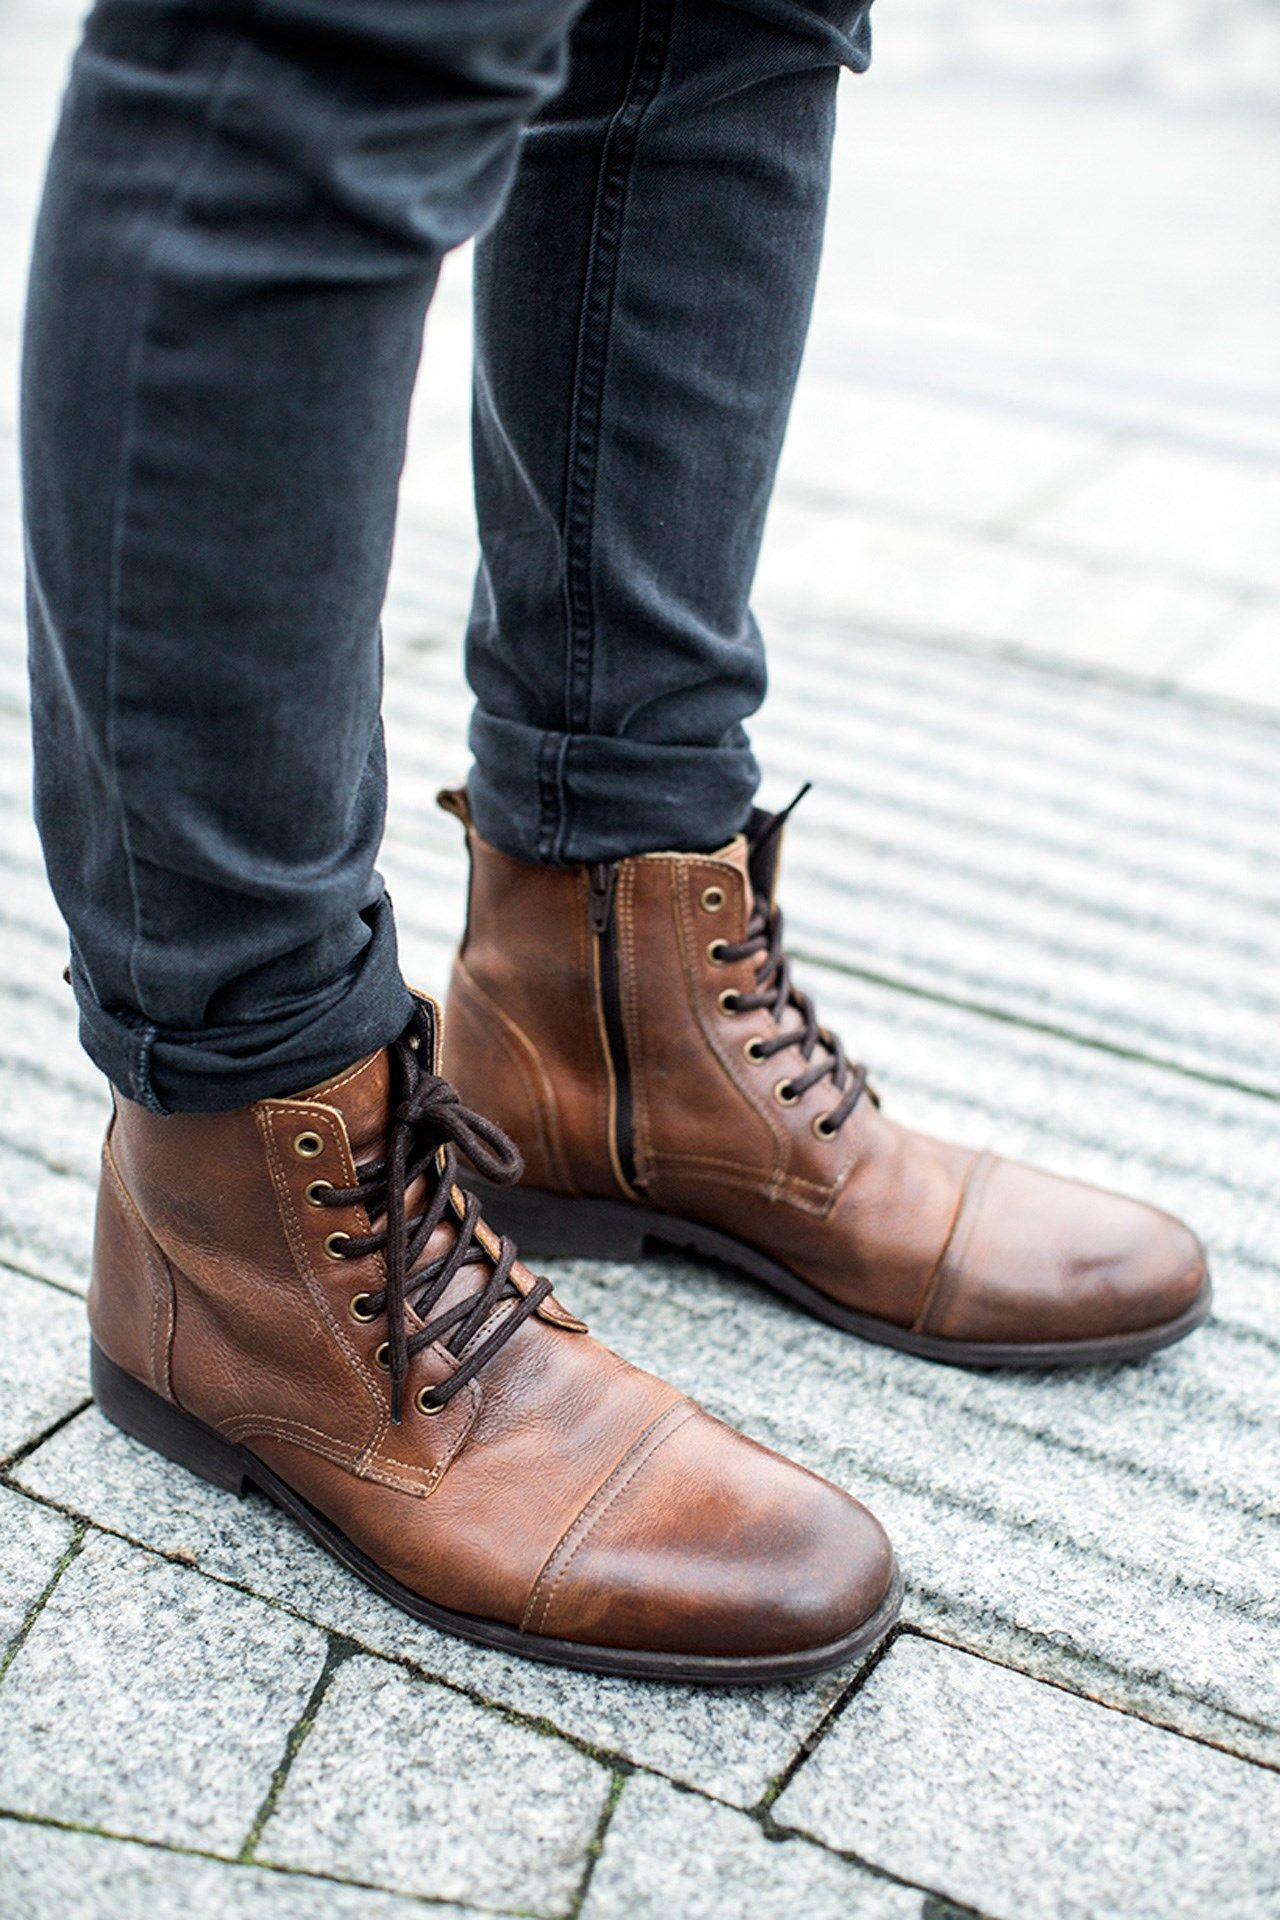 Fortunately, hiking boots have been a major fashion trend for the last couple of winters, which means there's a whole host options that you can wear to the office.